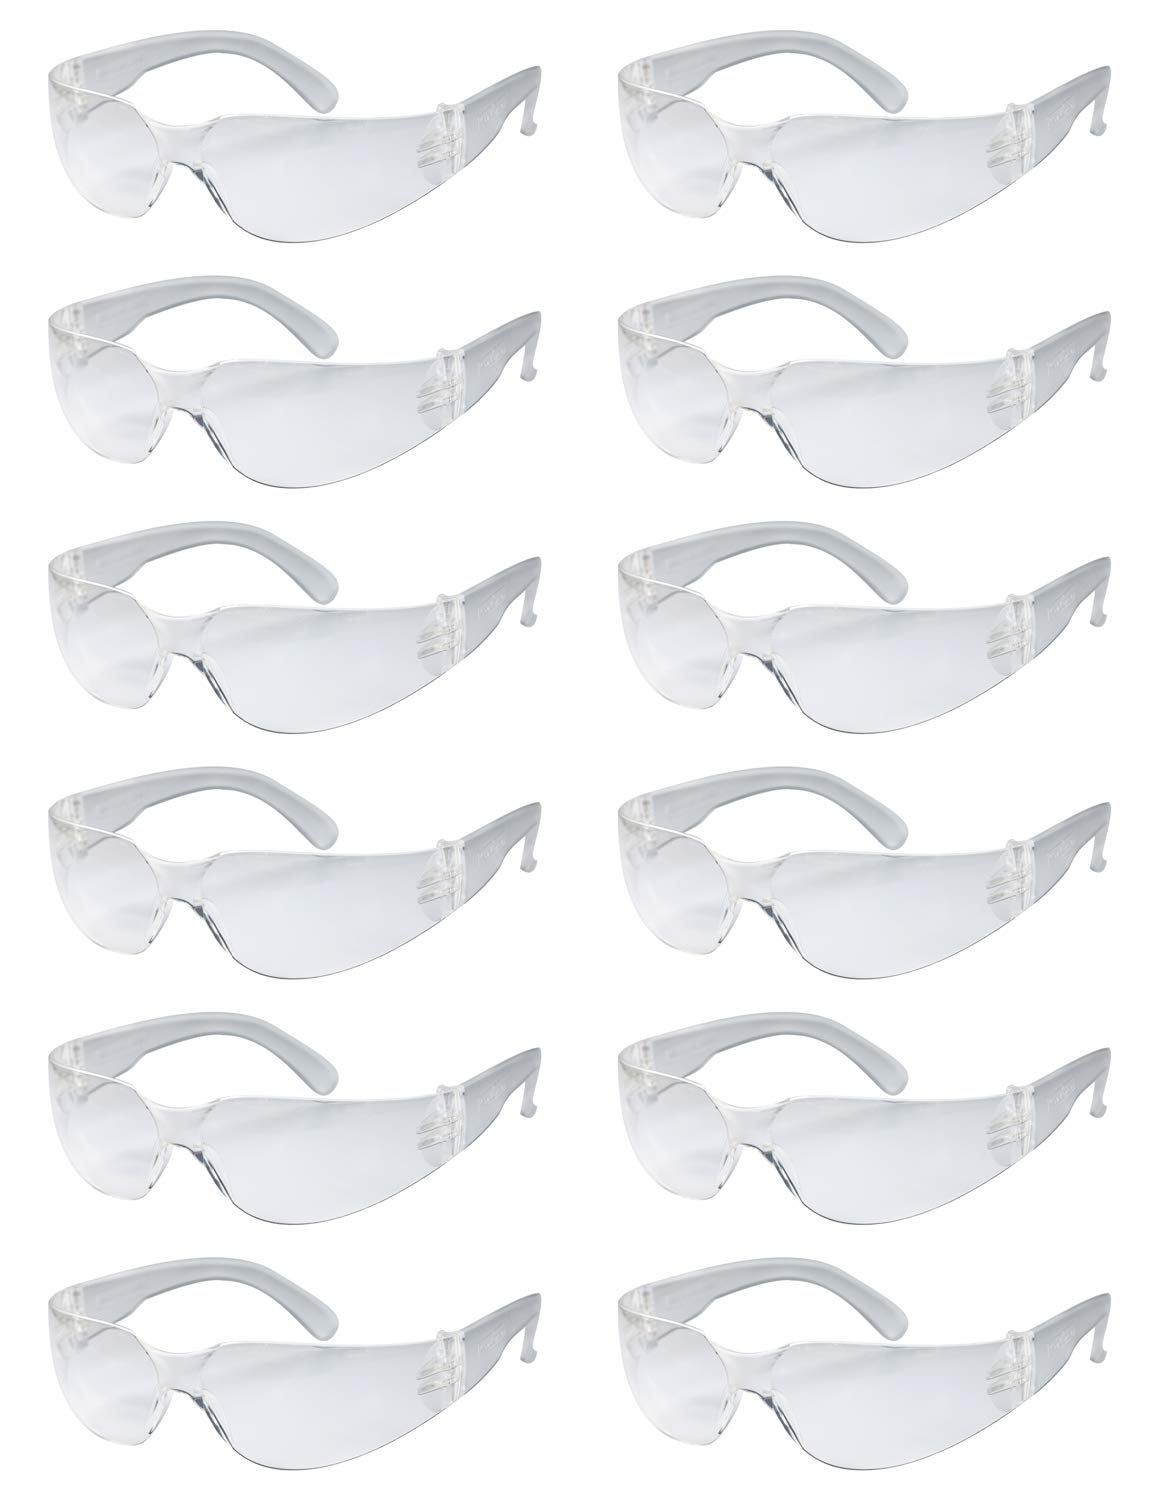 BISON LIFE Safety Glasses, One Size, Clear Protective Polycarbonate Lens, 12 per Box (1 box)